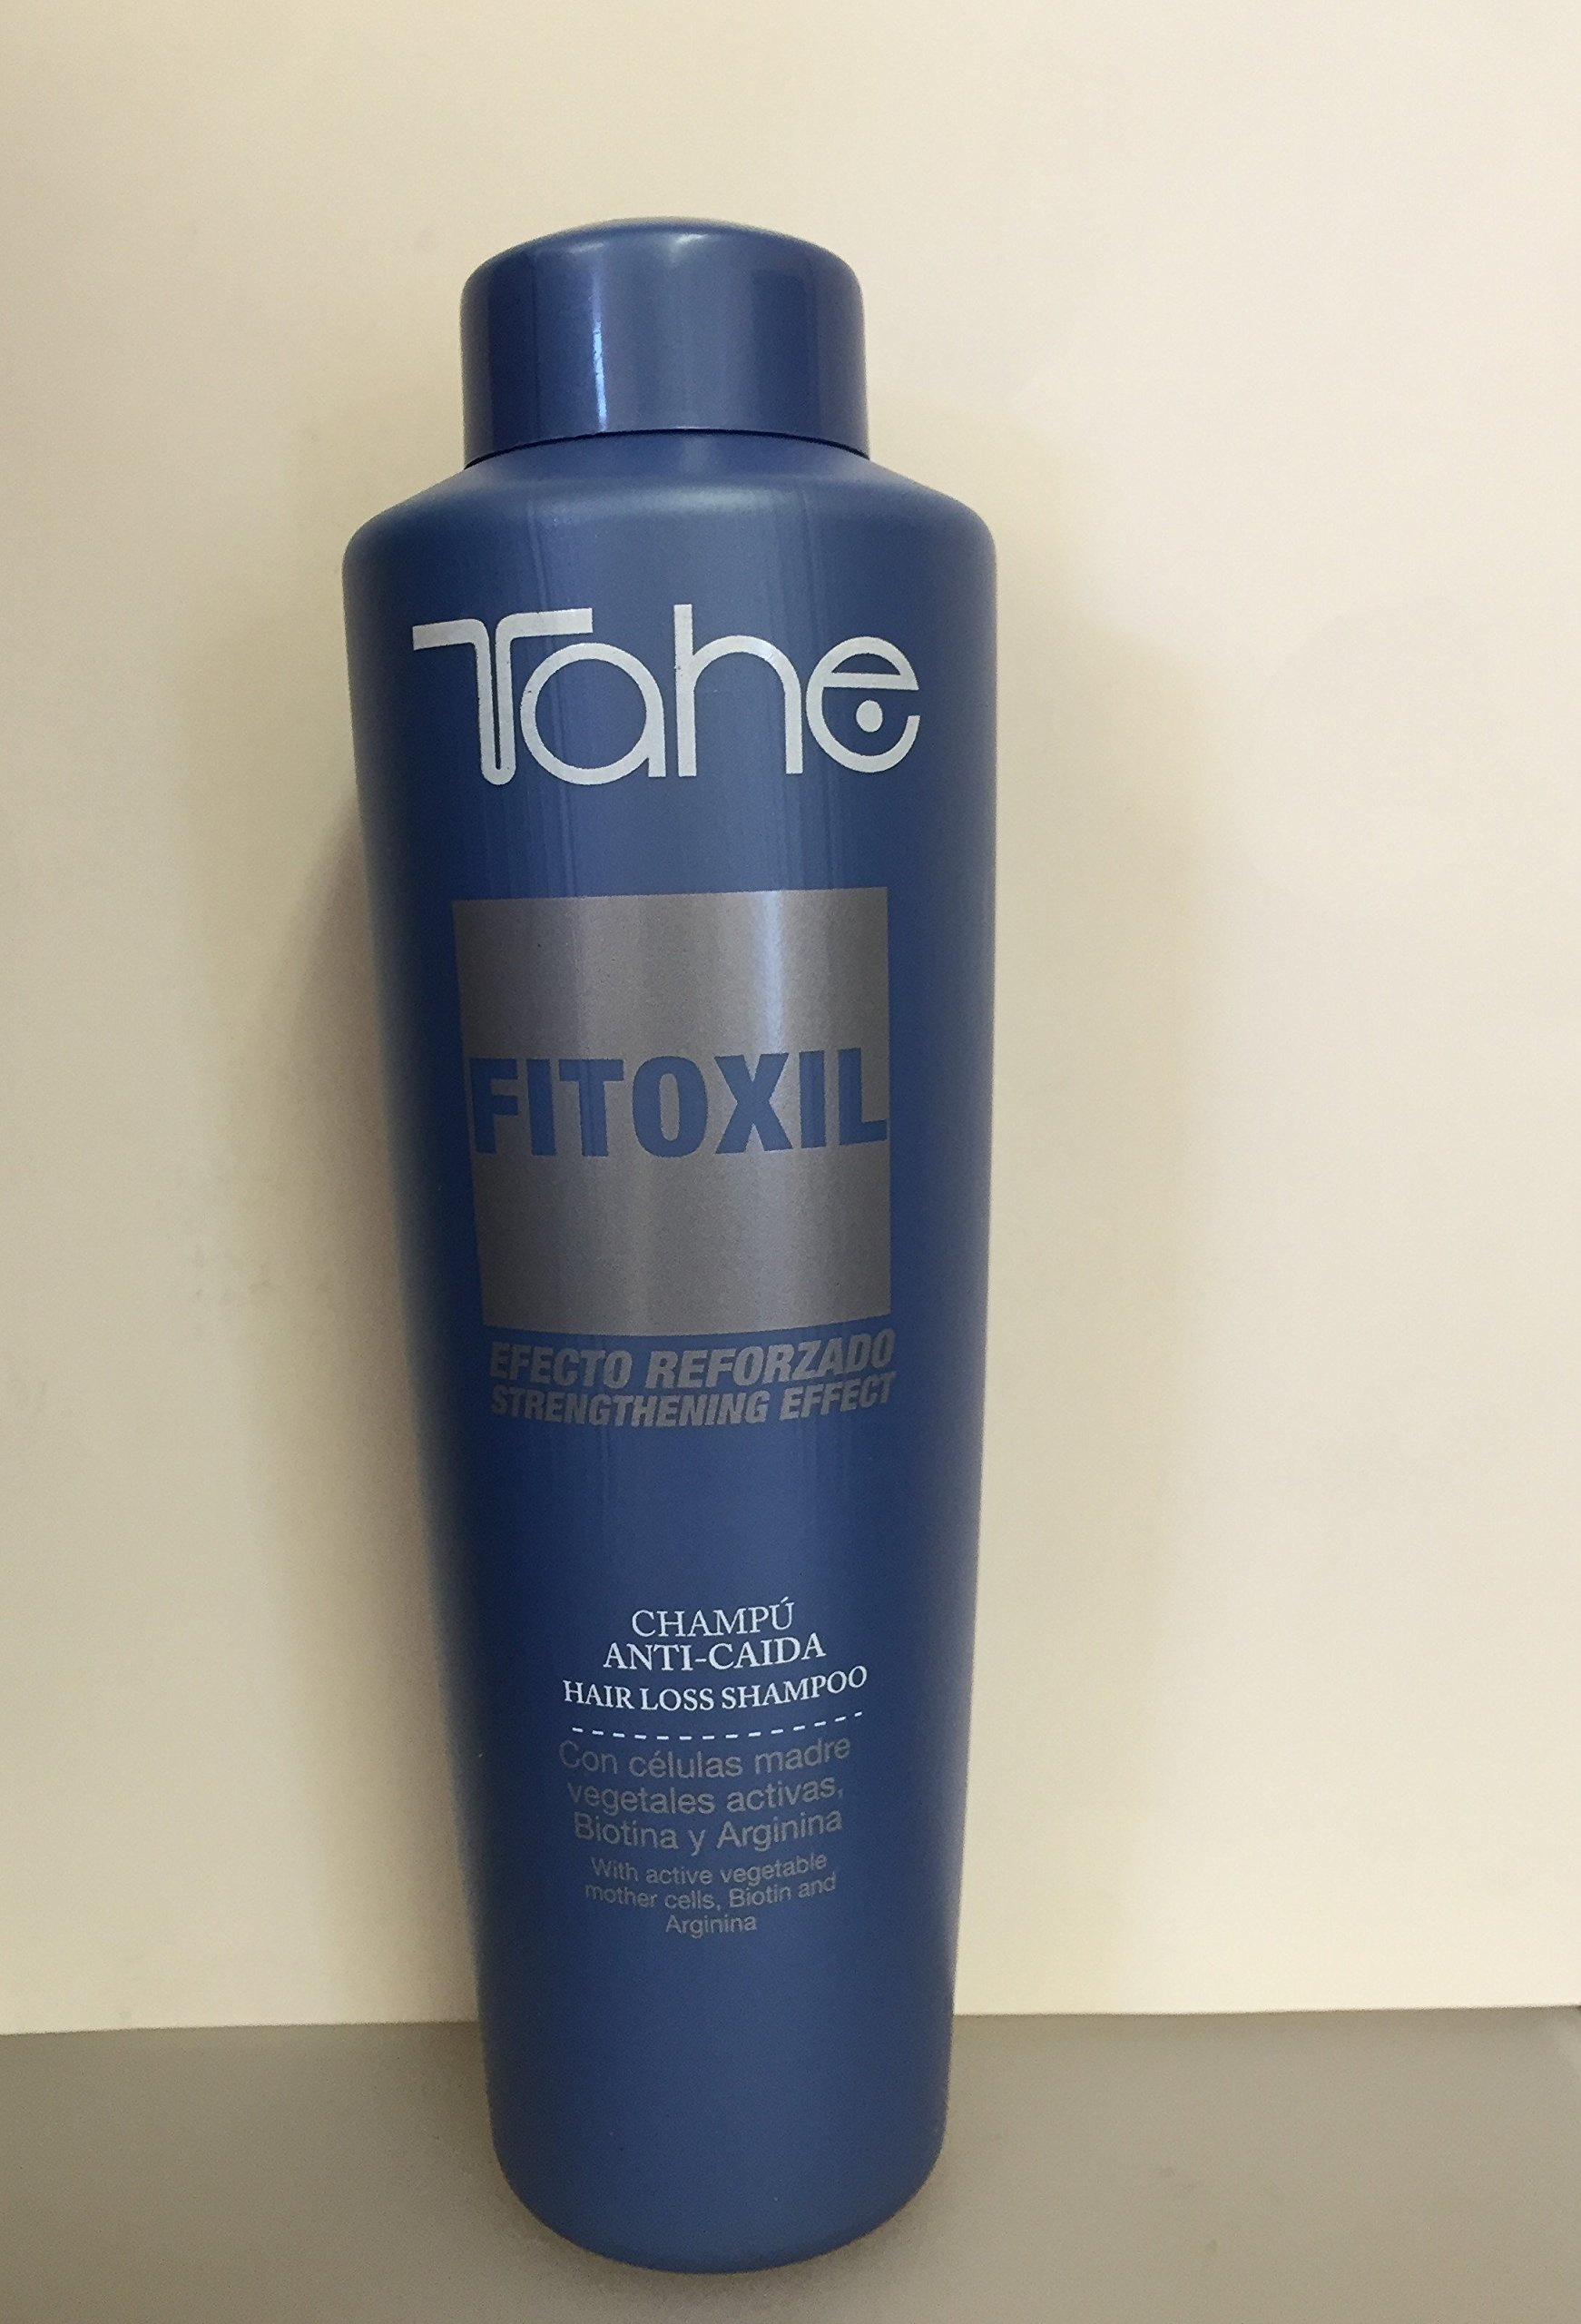 Tahe Fitoxil Strengthening Effect Hair Loss Shampoo 1000ml